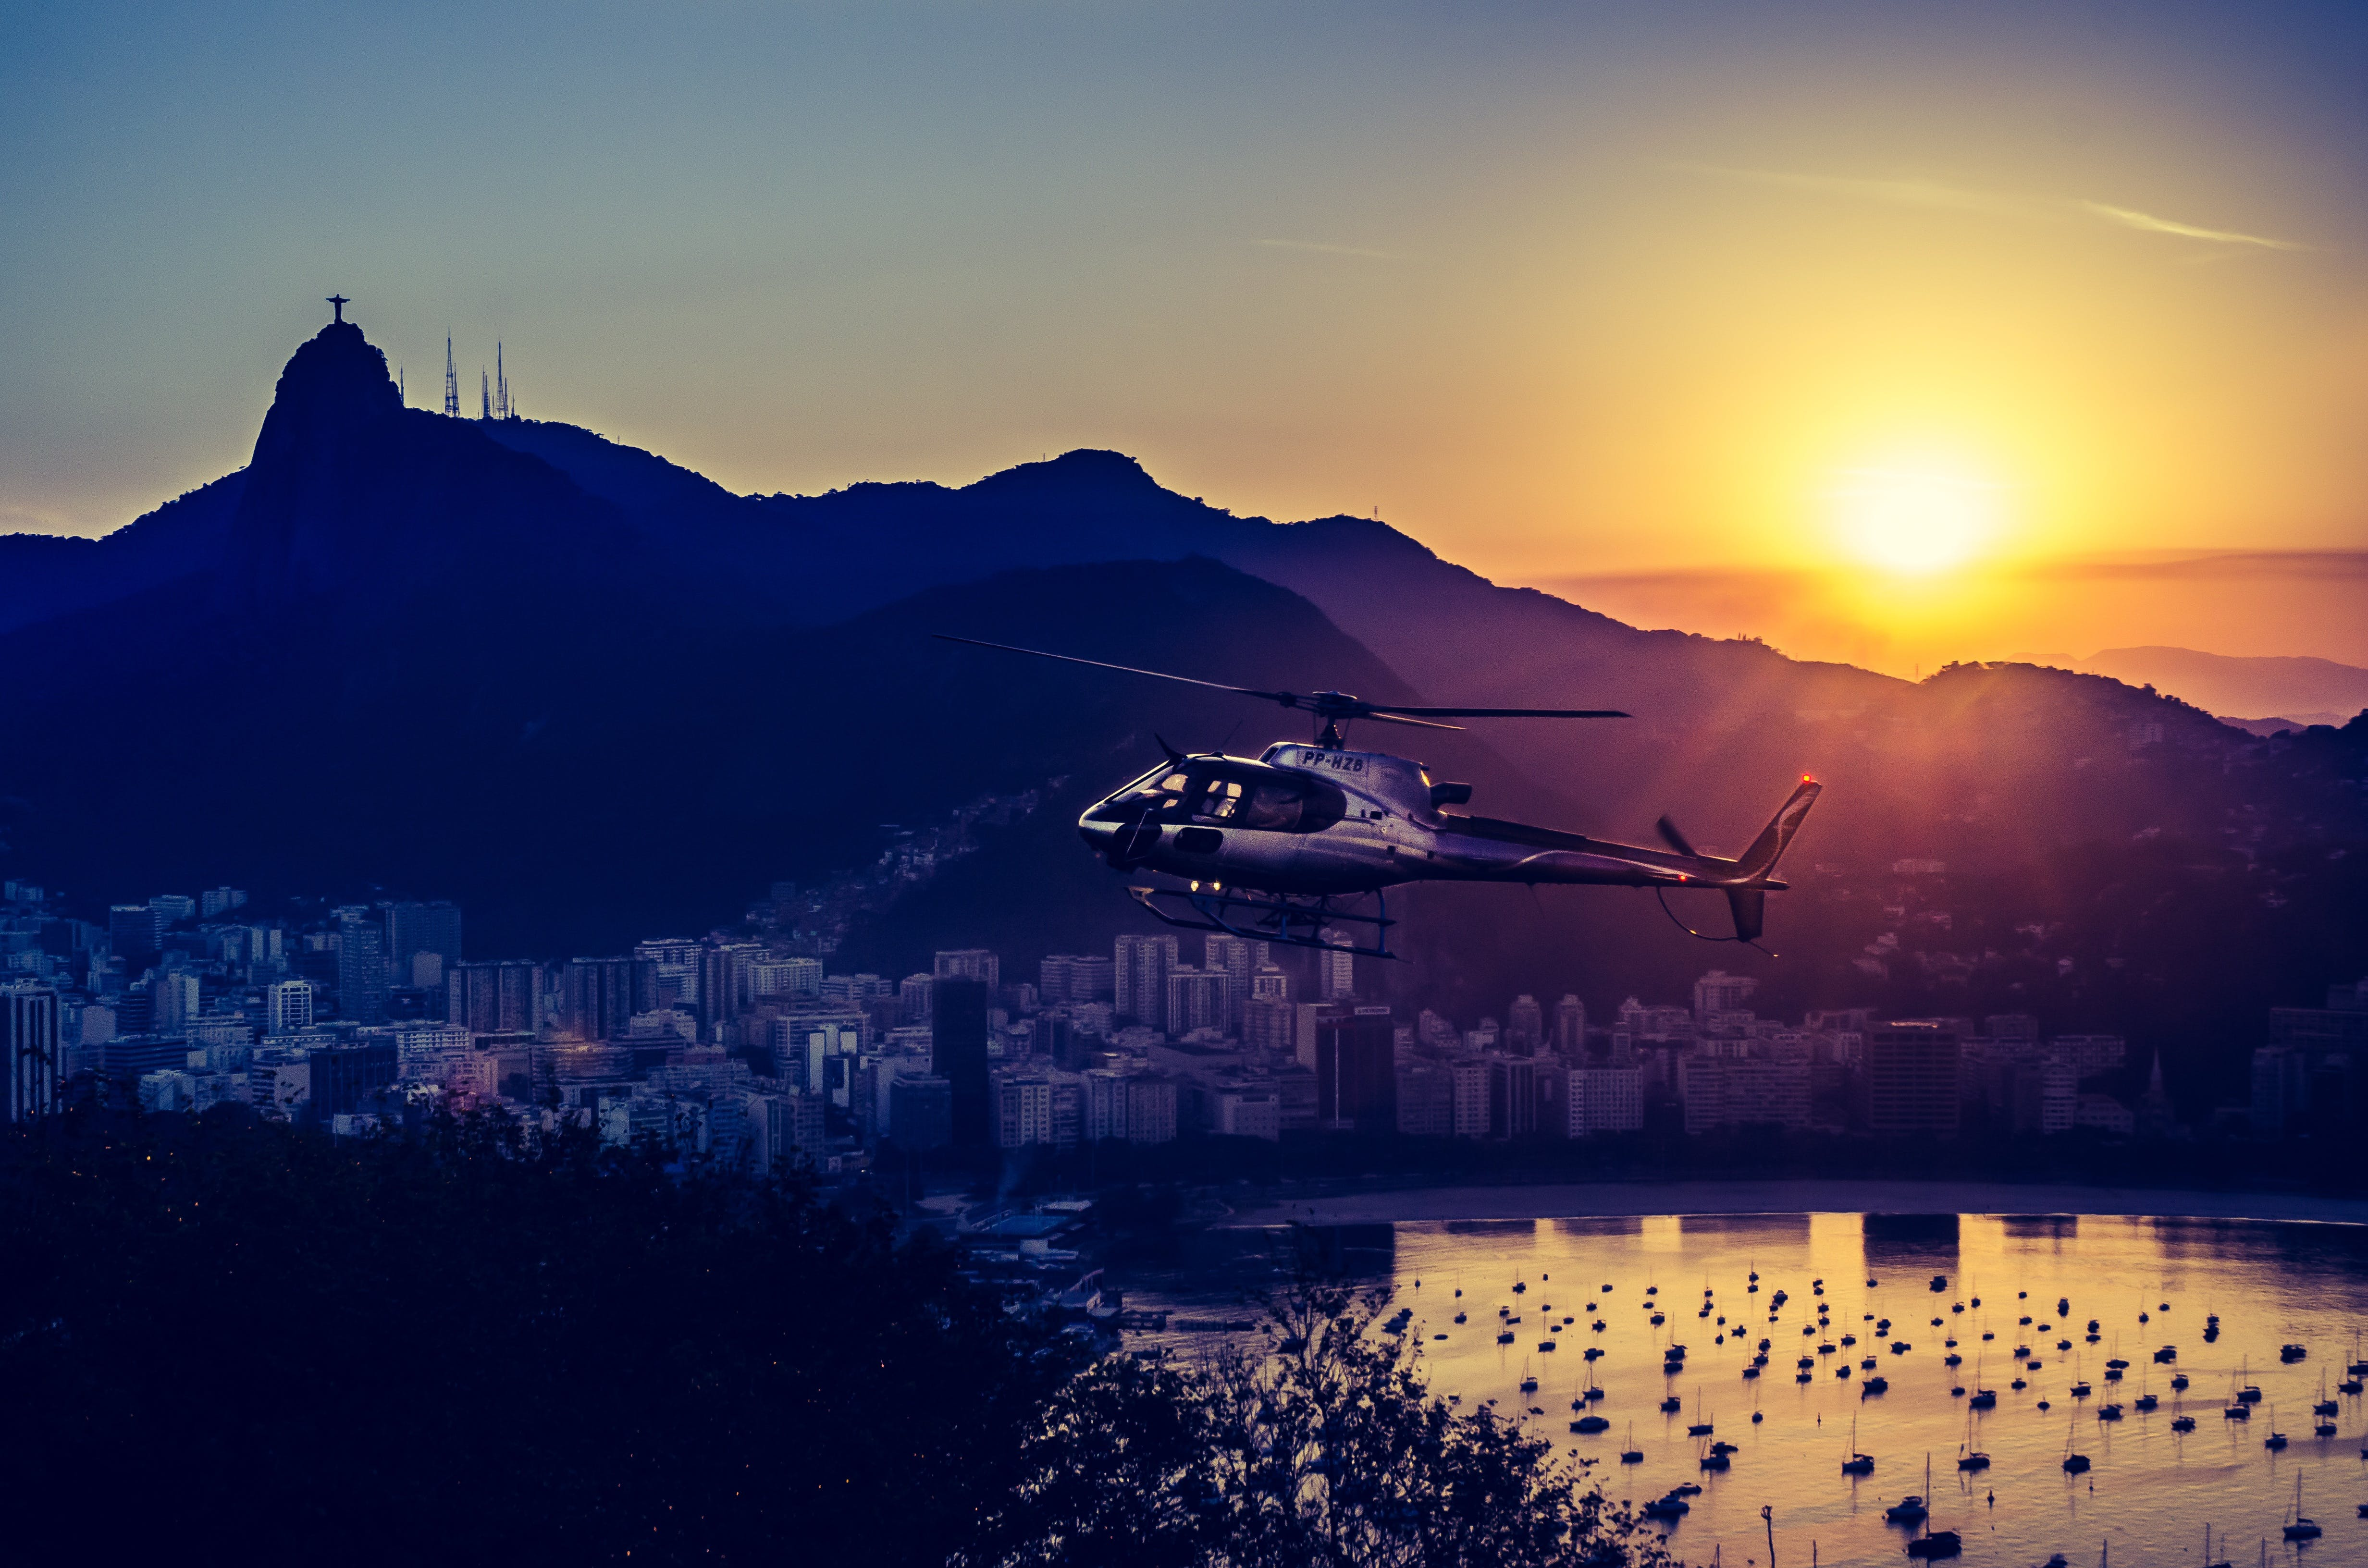 Aerial Photography of Helicopter during Twilight